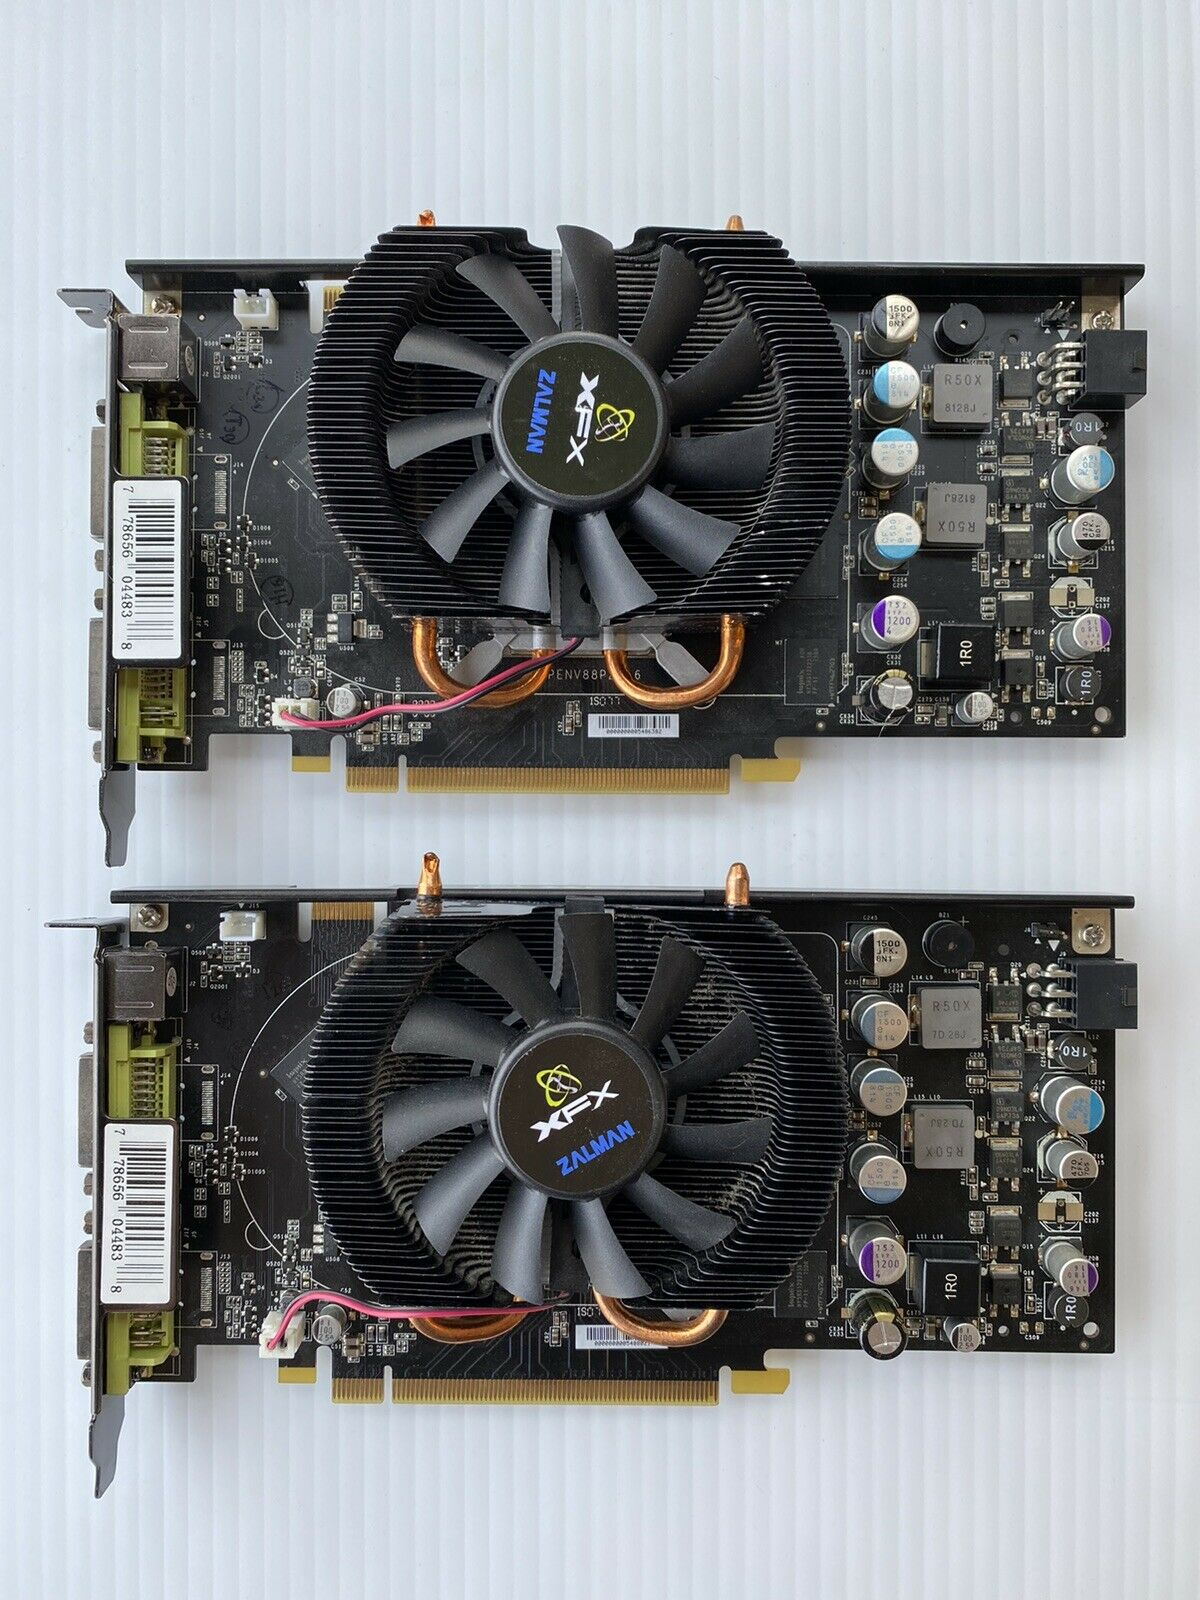 (Lot of 2) XFX GeForce 8800 GT (PCI-e, 512MB, DDR3) Graphics Cards